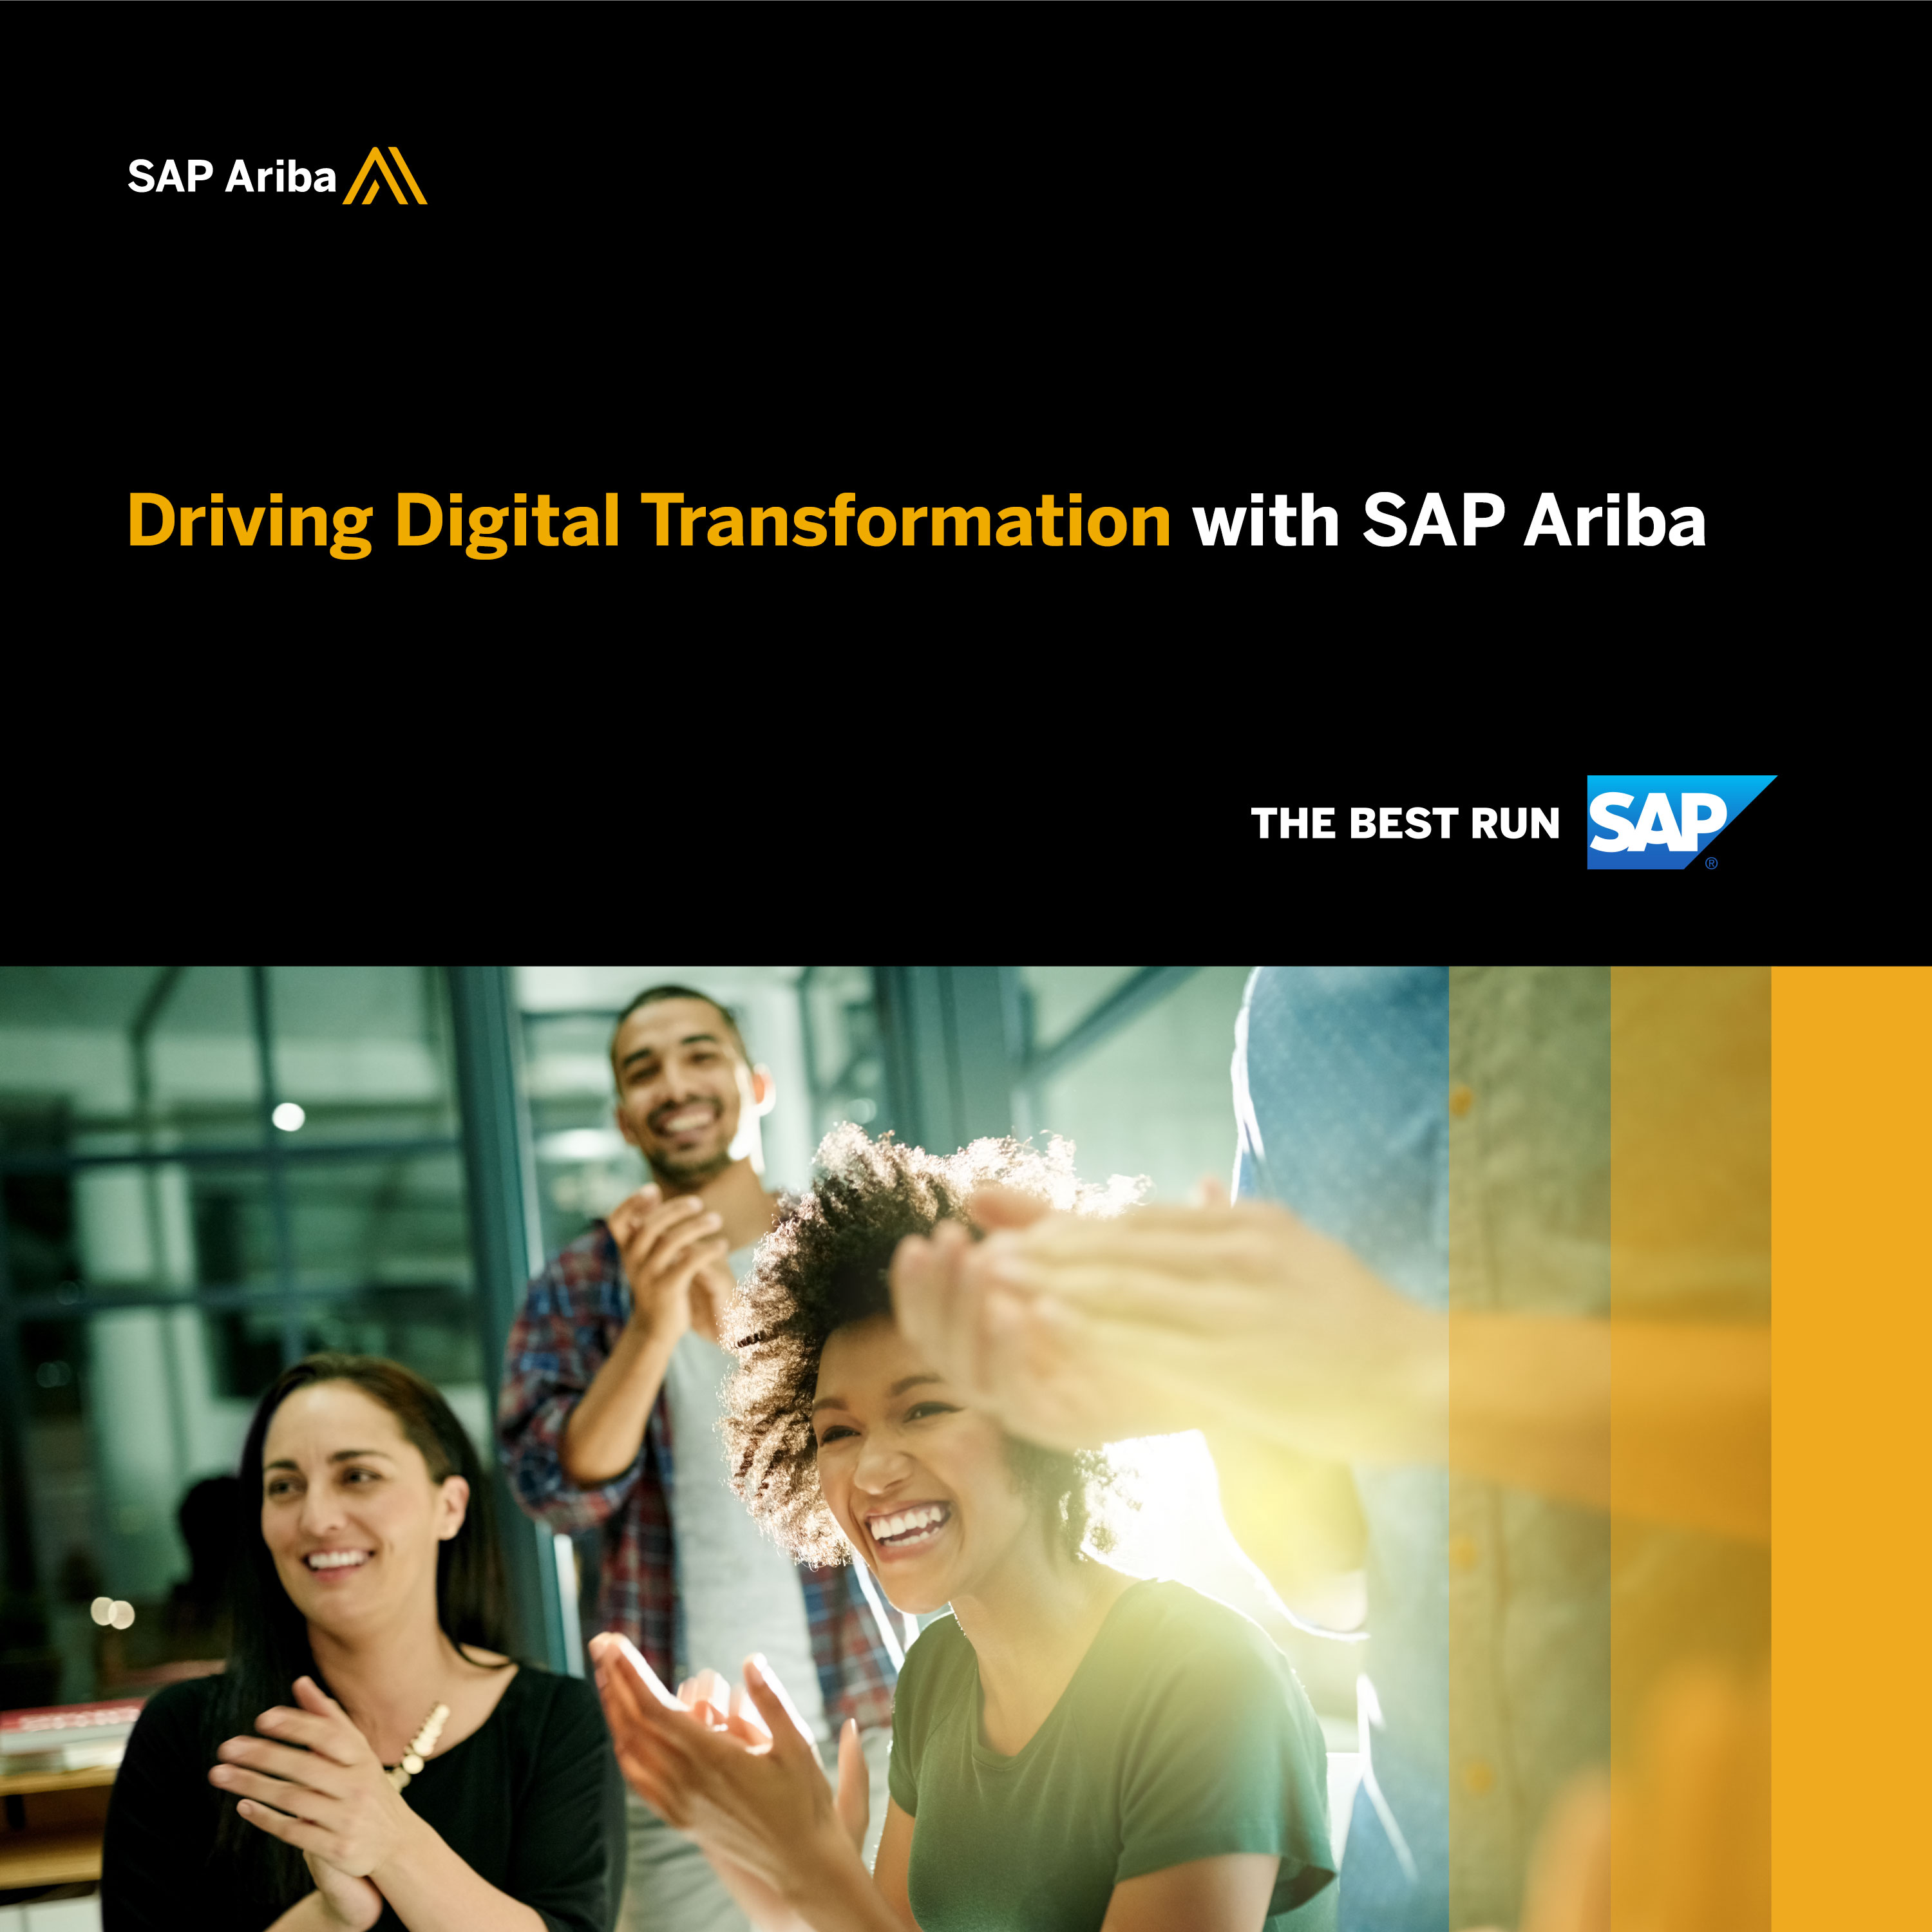 Driving Digital Transformation with SAP Ariba show image